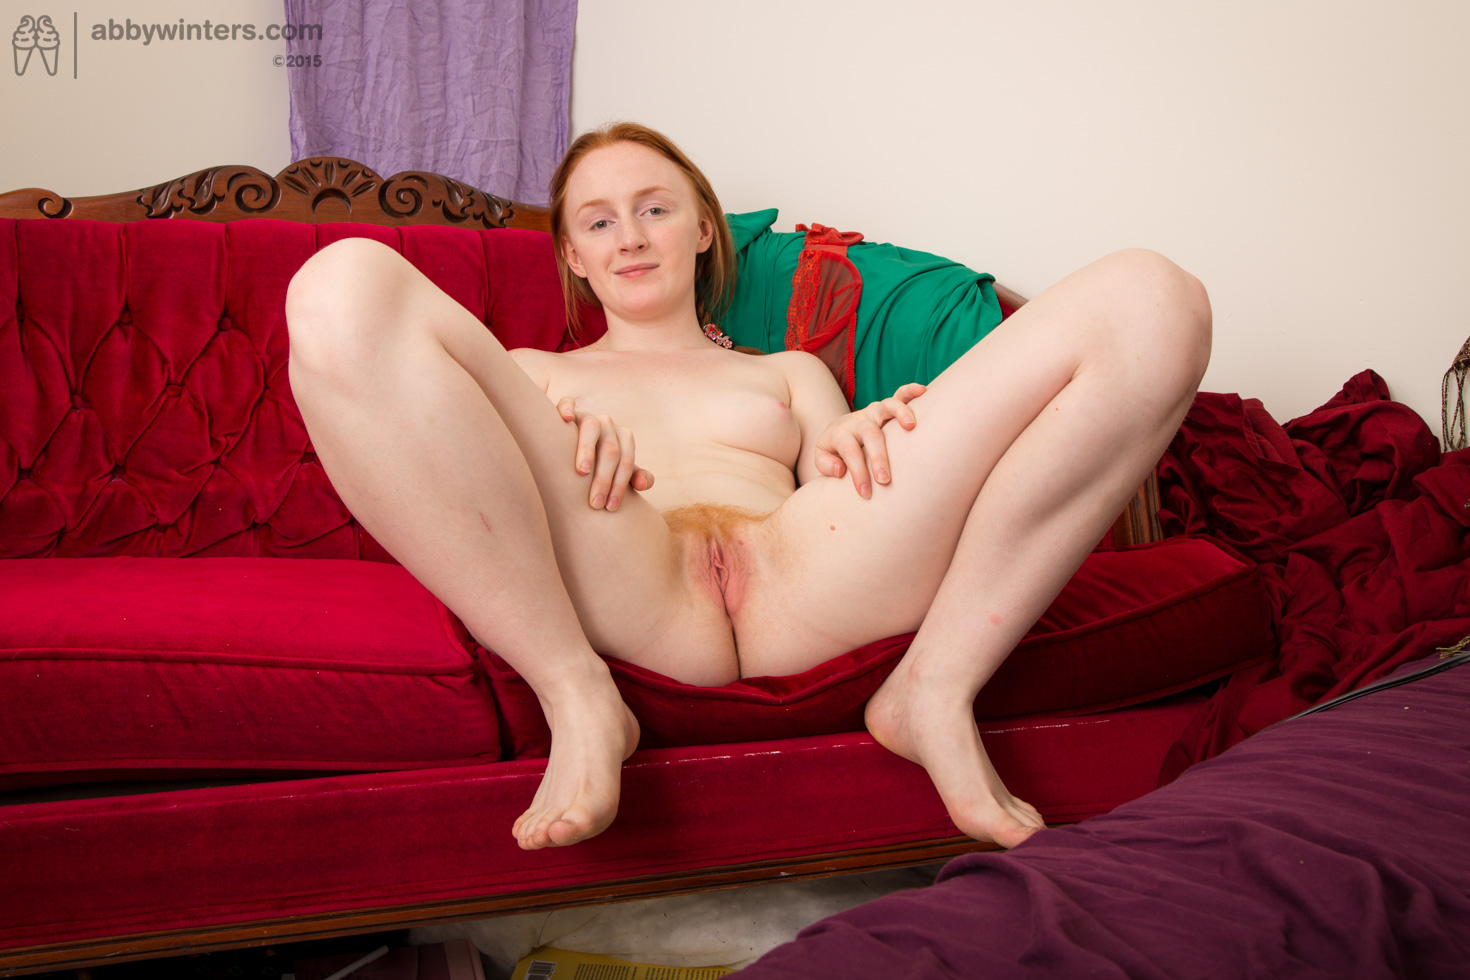 Real redhead hairy red pussy pink tits pale skin 2 1